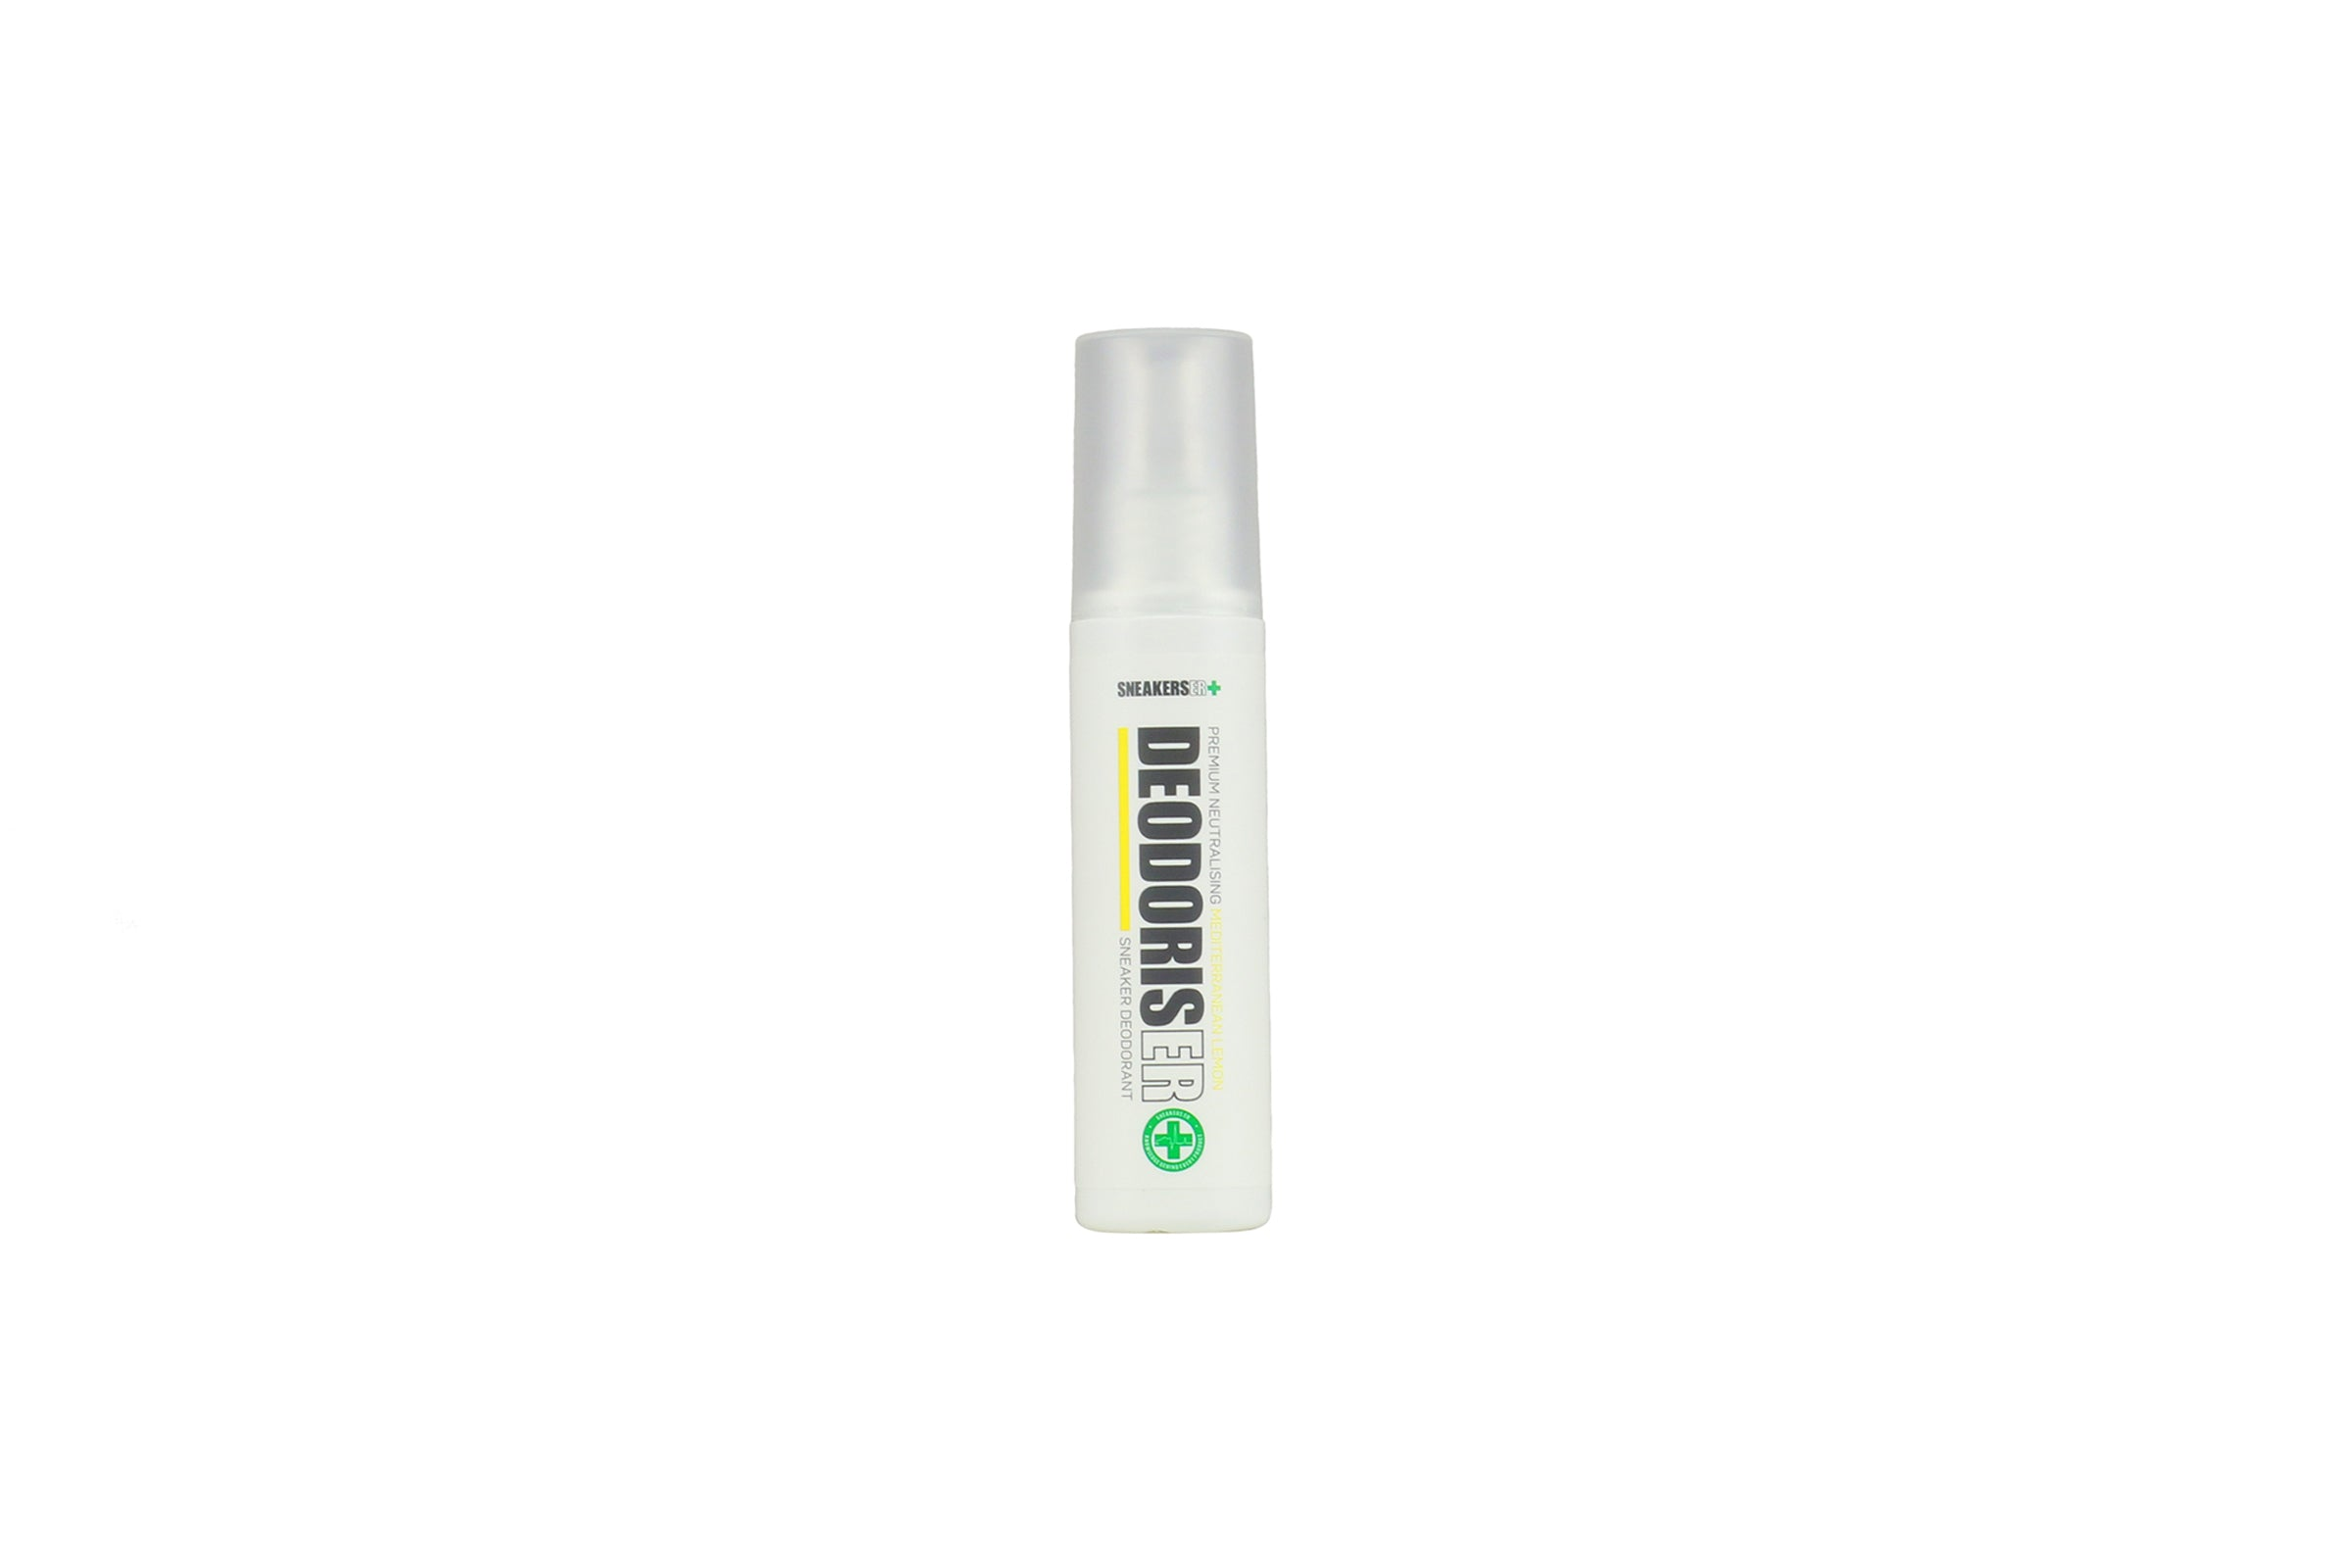 Sneakers ER Dedoderiser 75ml Mediterranean Lemon